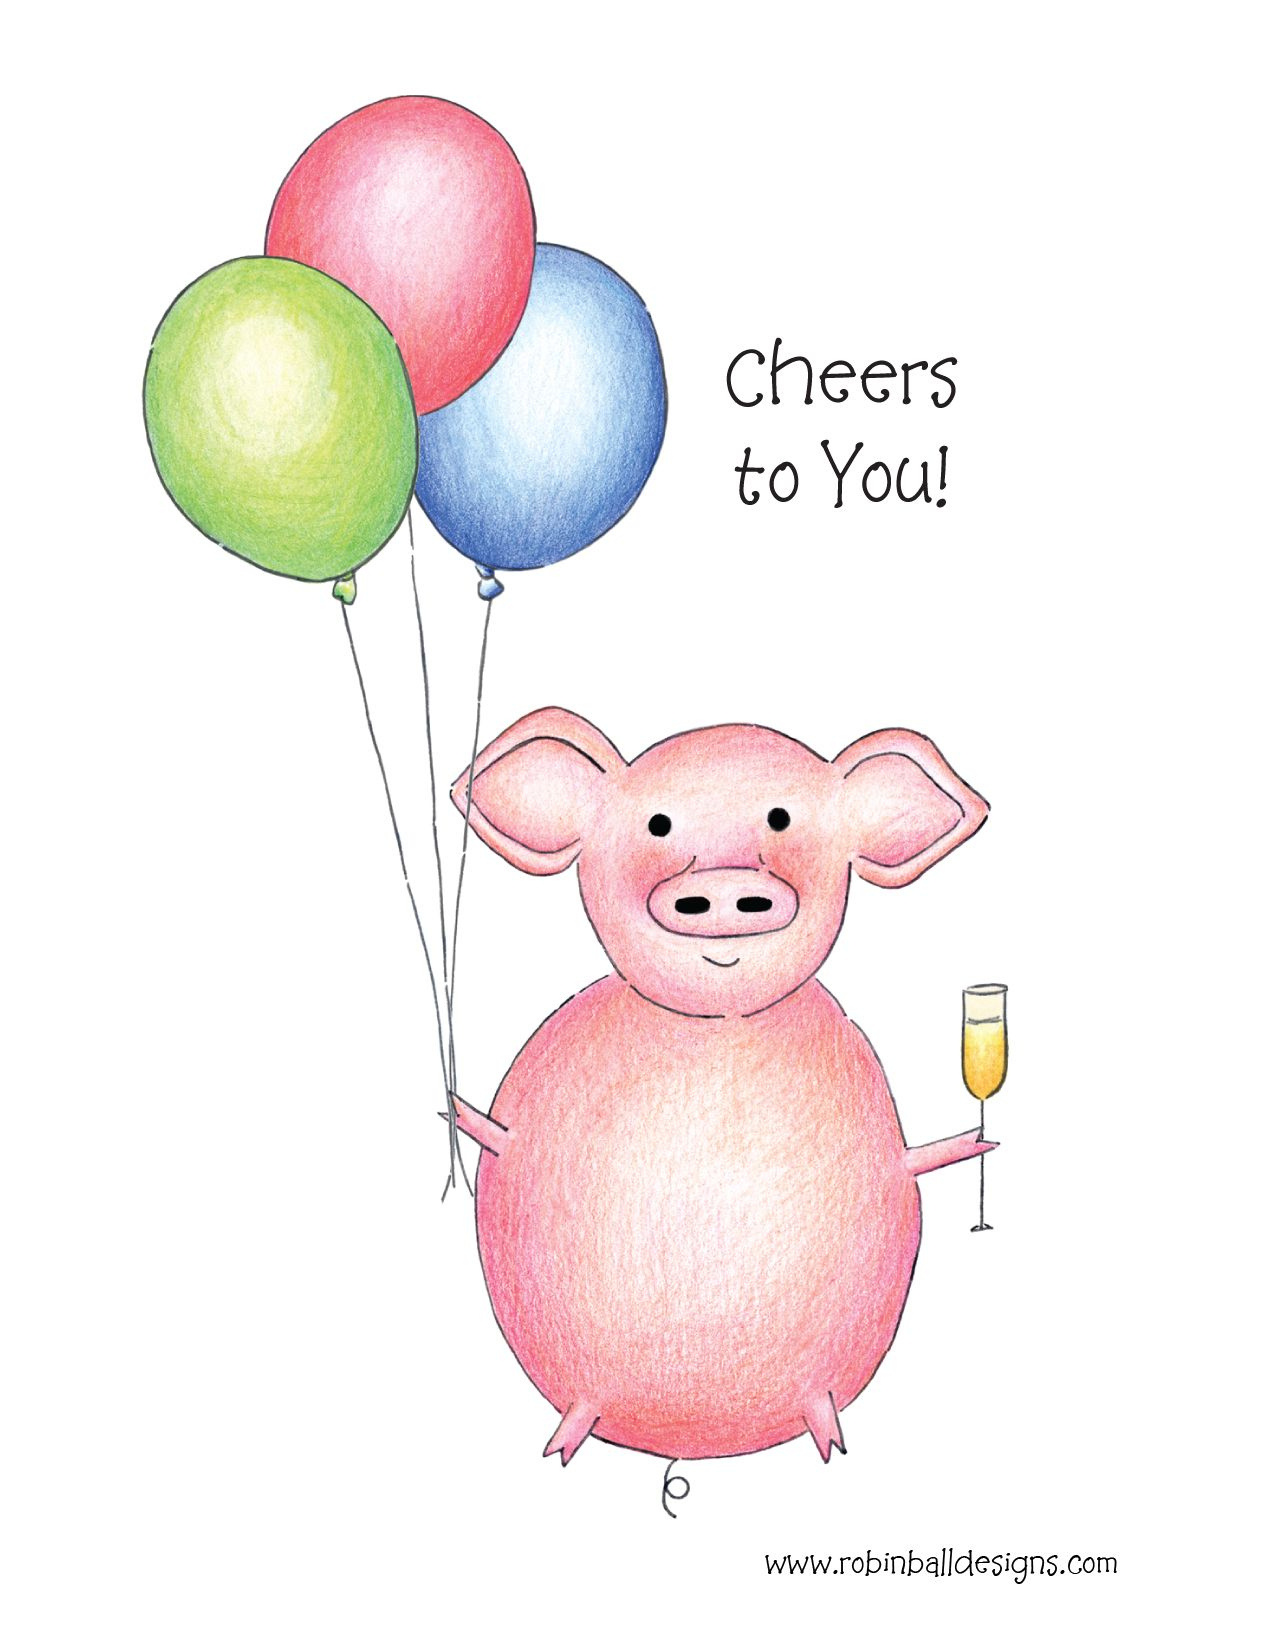 300 pig greeting card appropriate for retirement graduation 300 pig greeting card appropriate for retirement graduation job change birthday kristyandbryce Gallery